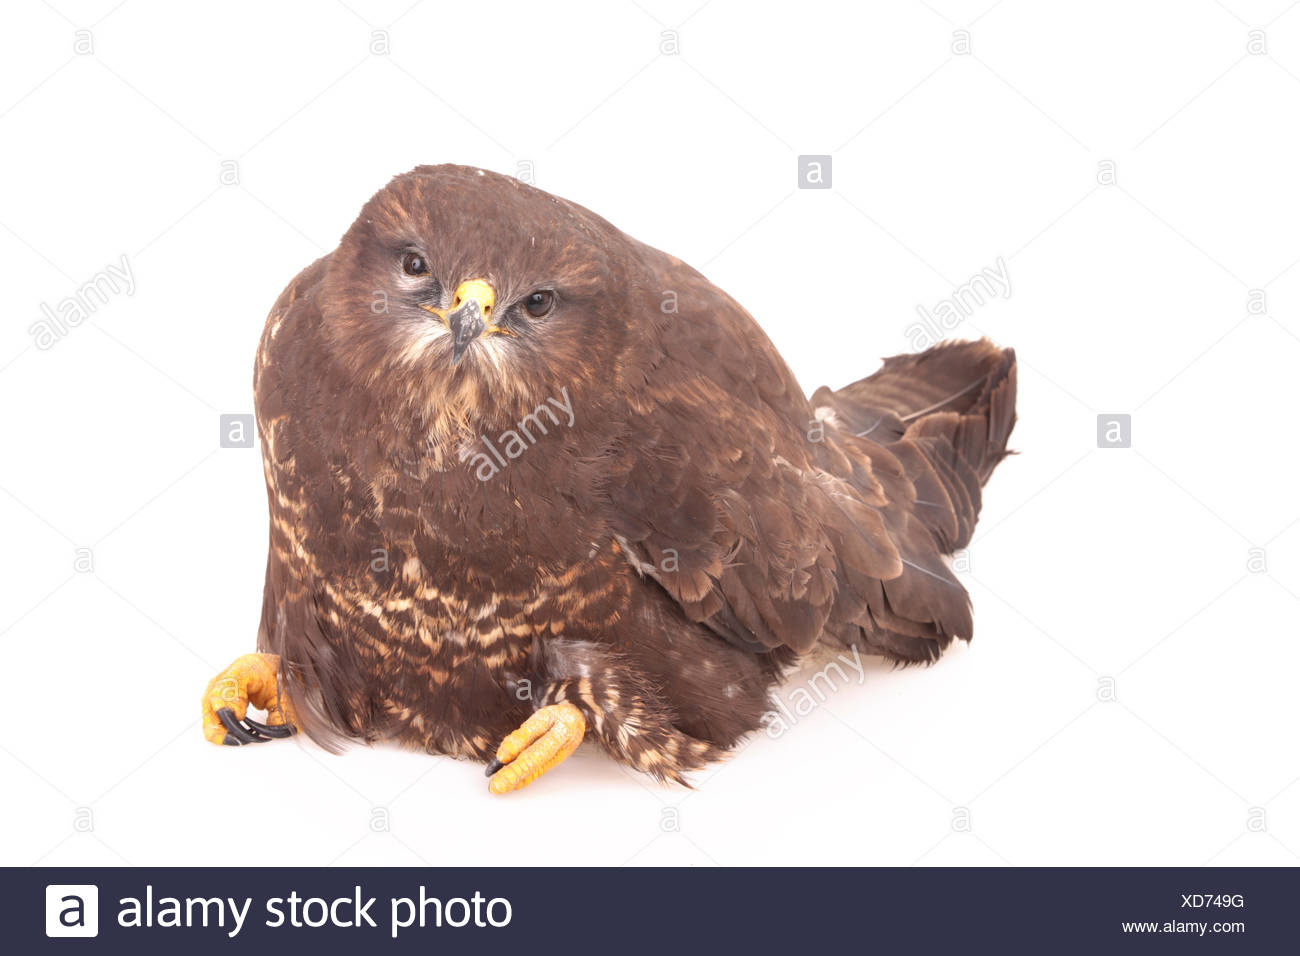 A common buzzard, Buteo buteo, found on a roadside, too weak to run away. It was caught and secured for the night, to be taken to a veterinarian the next day. Unfortunately it did not survive the night. - Stock Image